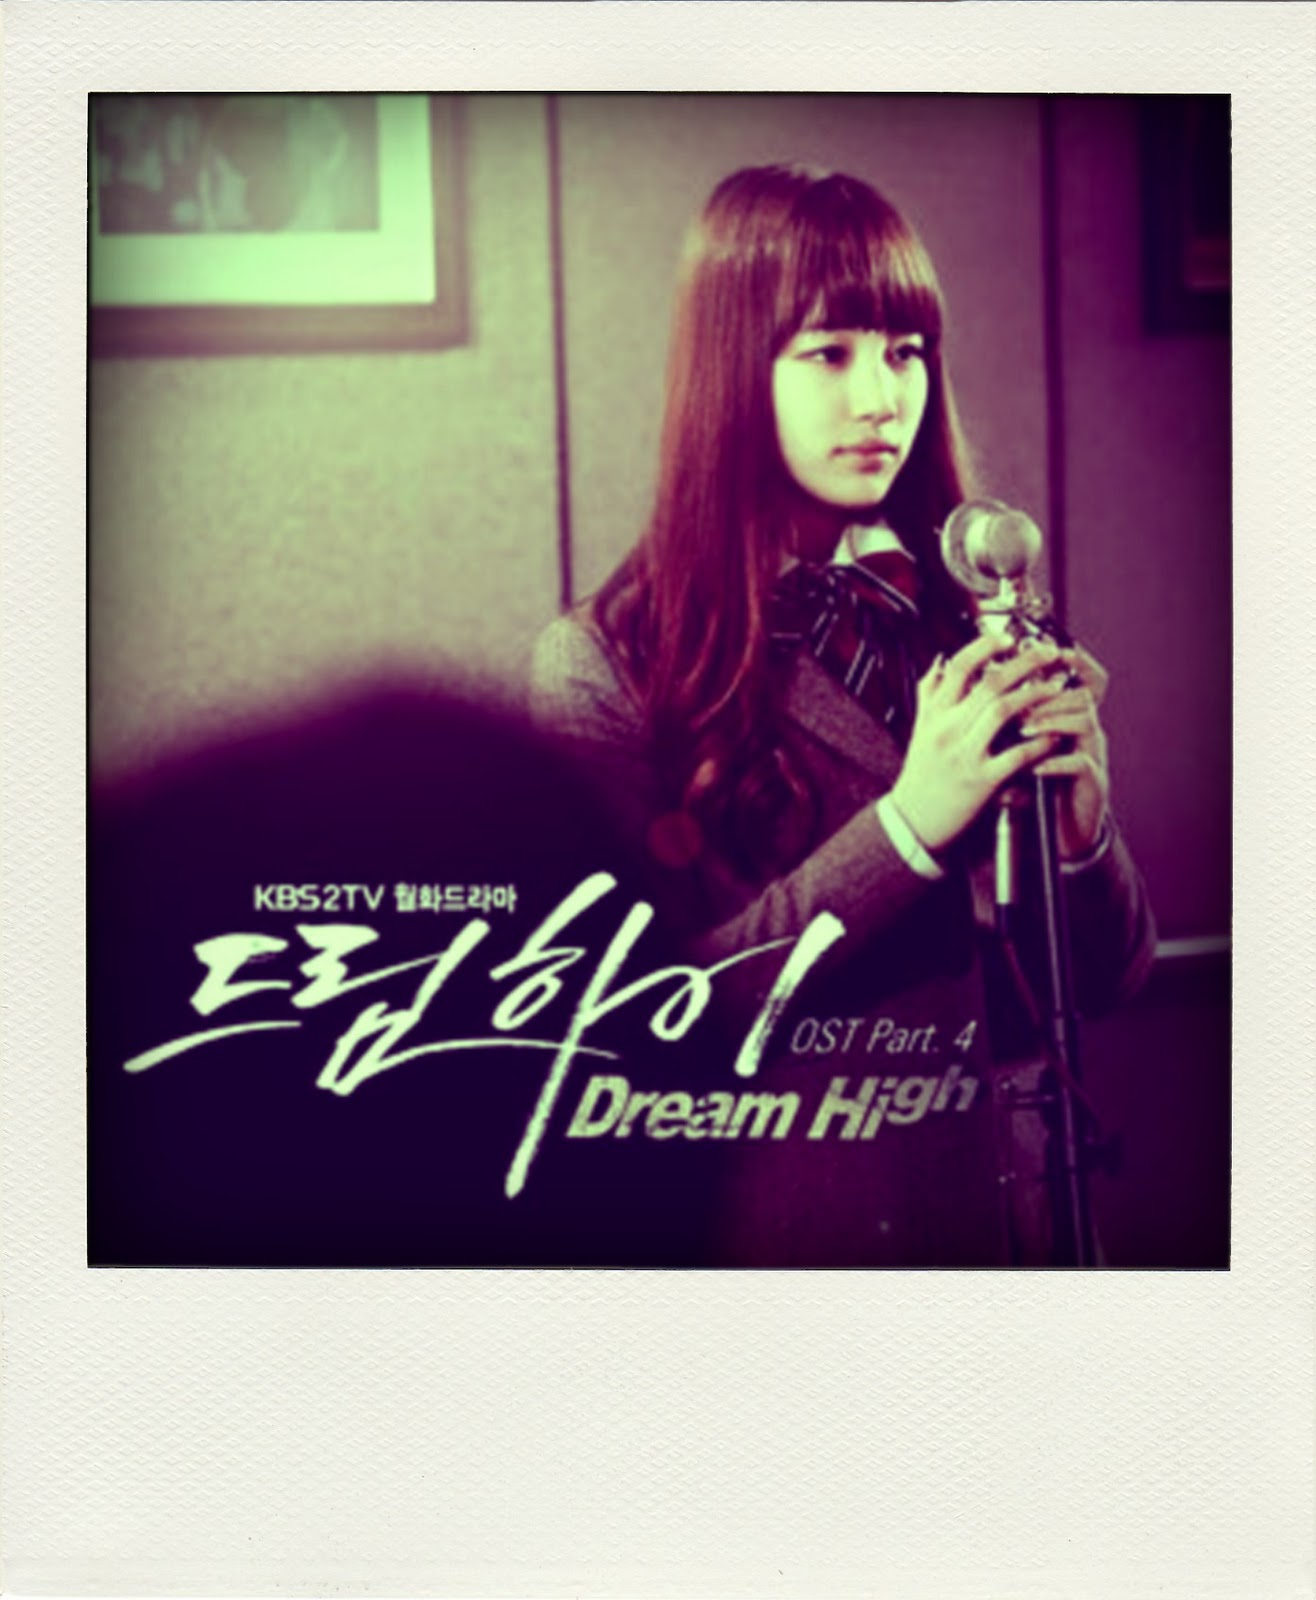 http://1.bp.blogspot.com/-vvsReYS92S0/TgAfgYFhZrI/AAAAAAAAA8k/ca6CH3PbR5Y/s1600/Suzy+Miss+A+Dream+High+OST+Part.4+Album-Cover+.jpg